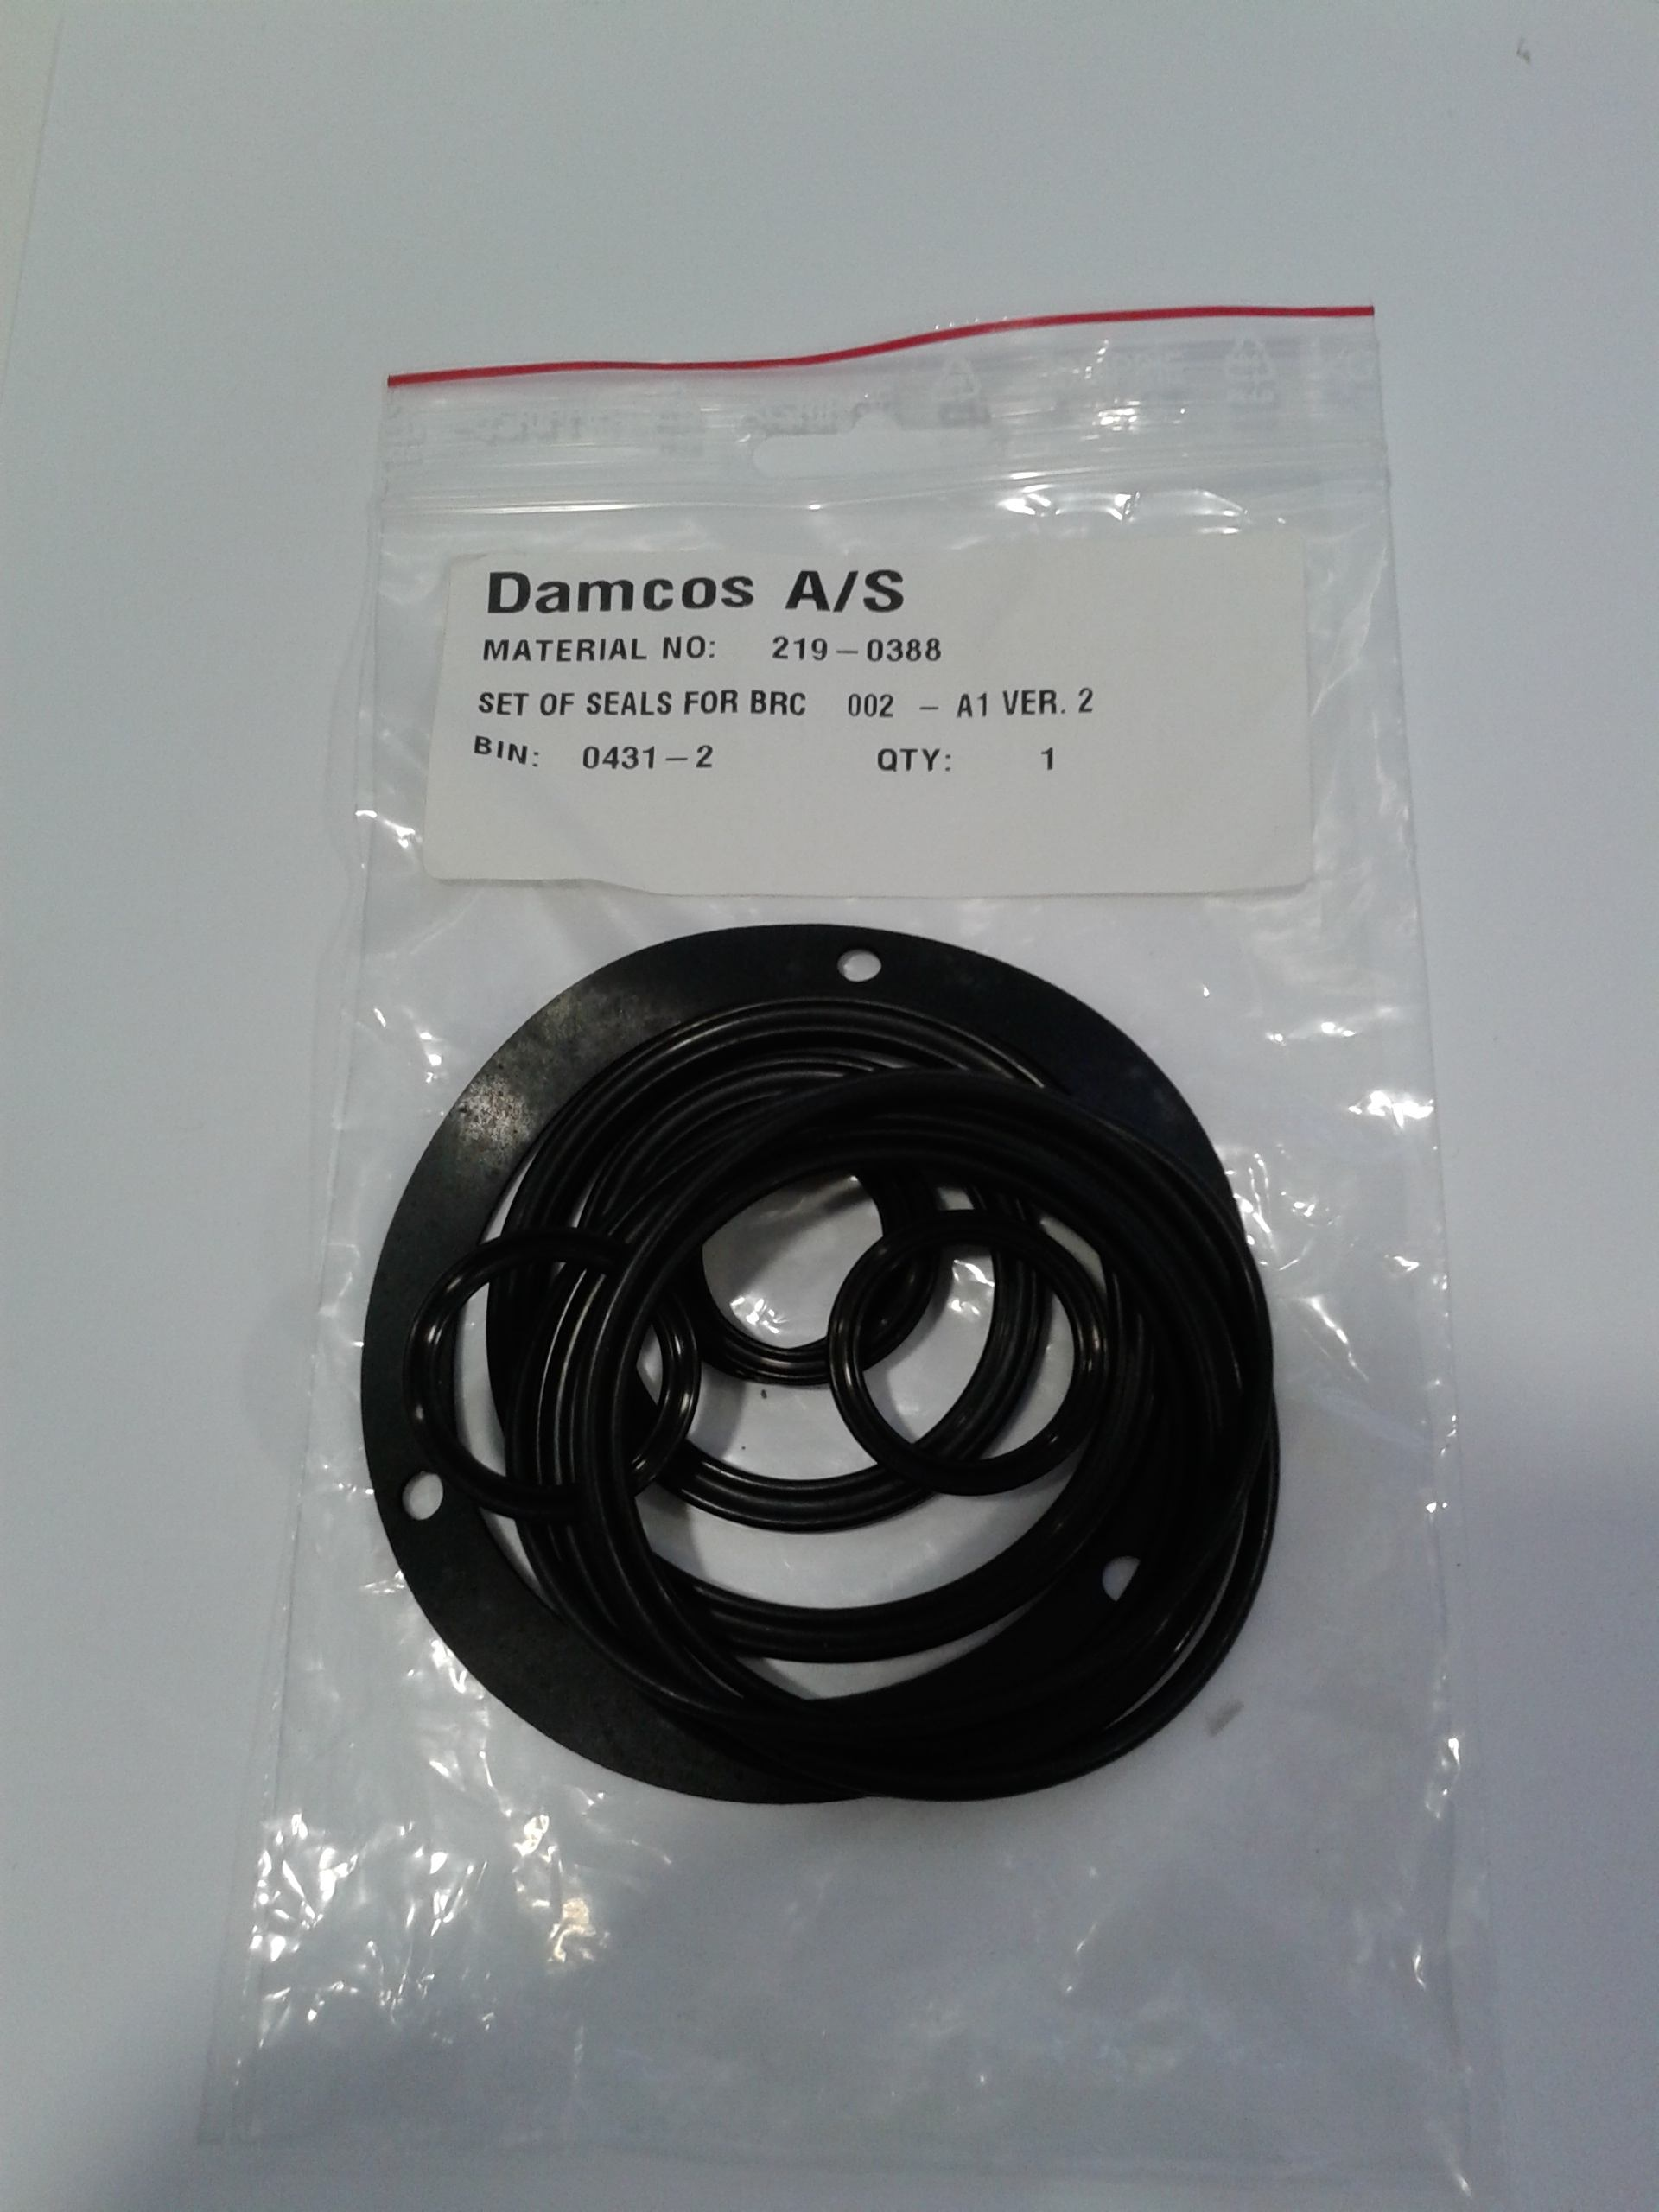 Damcos-Danfoss-BRC-002-A1-Actuator-Seal-Kit-219-0388